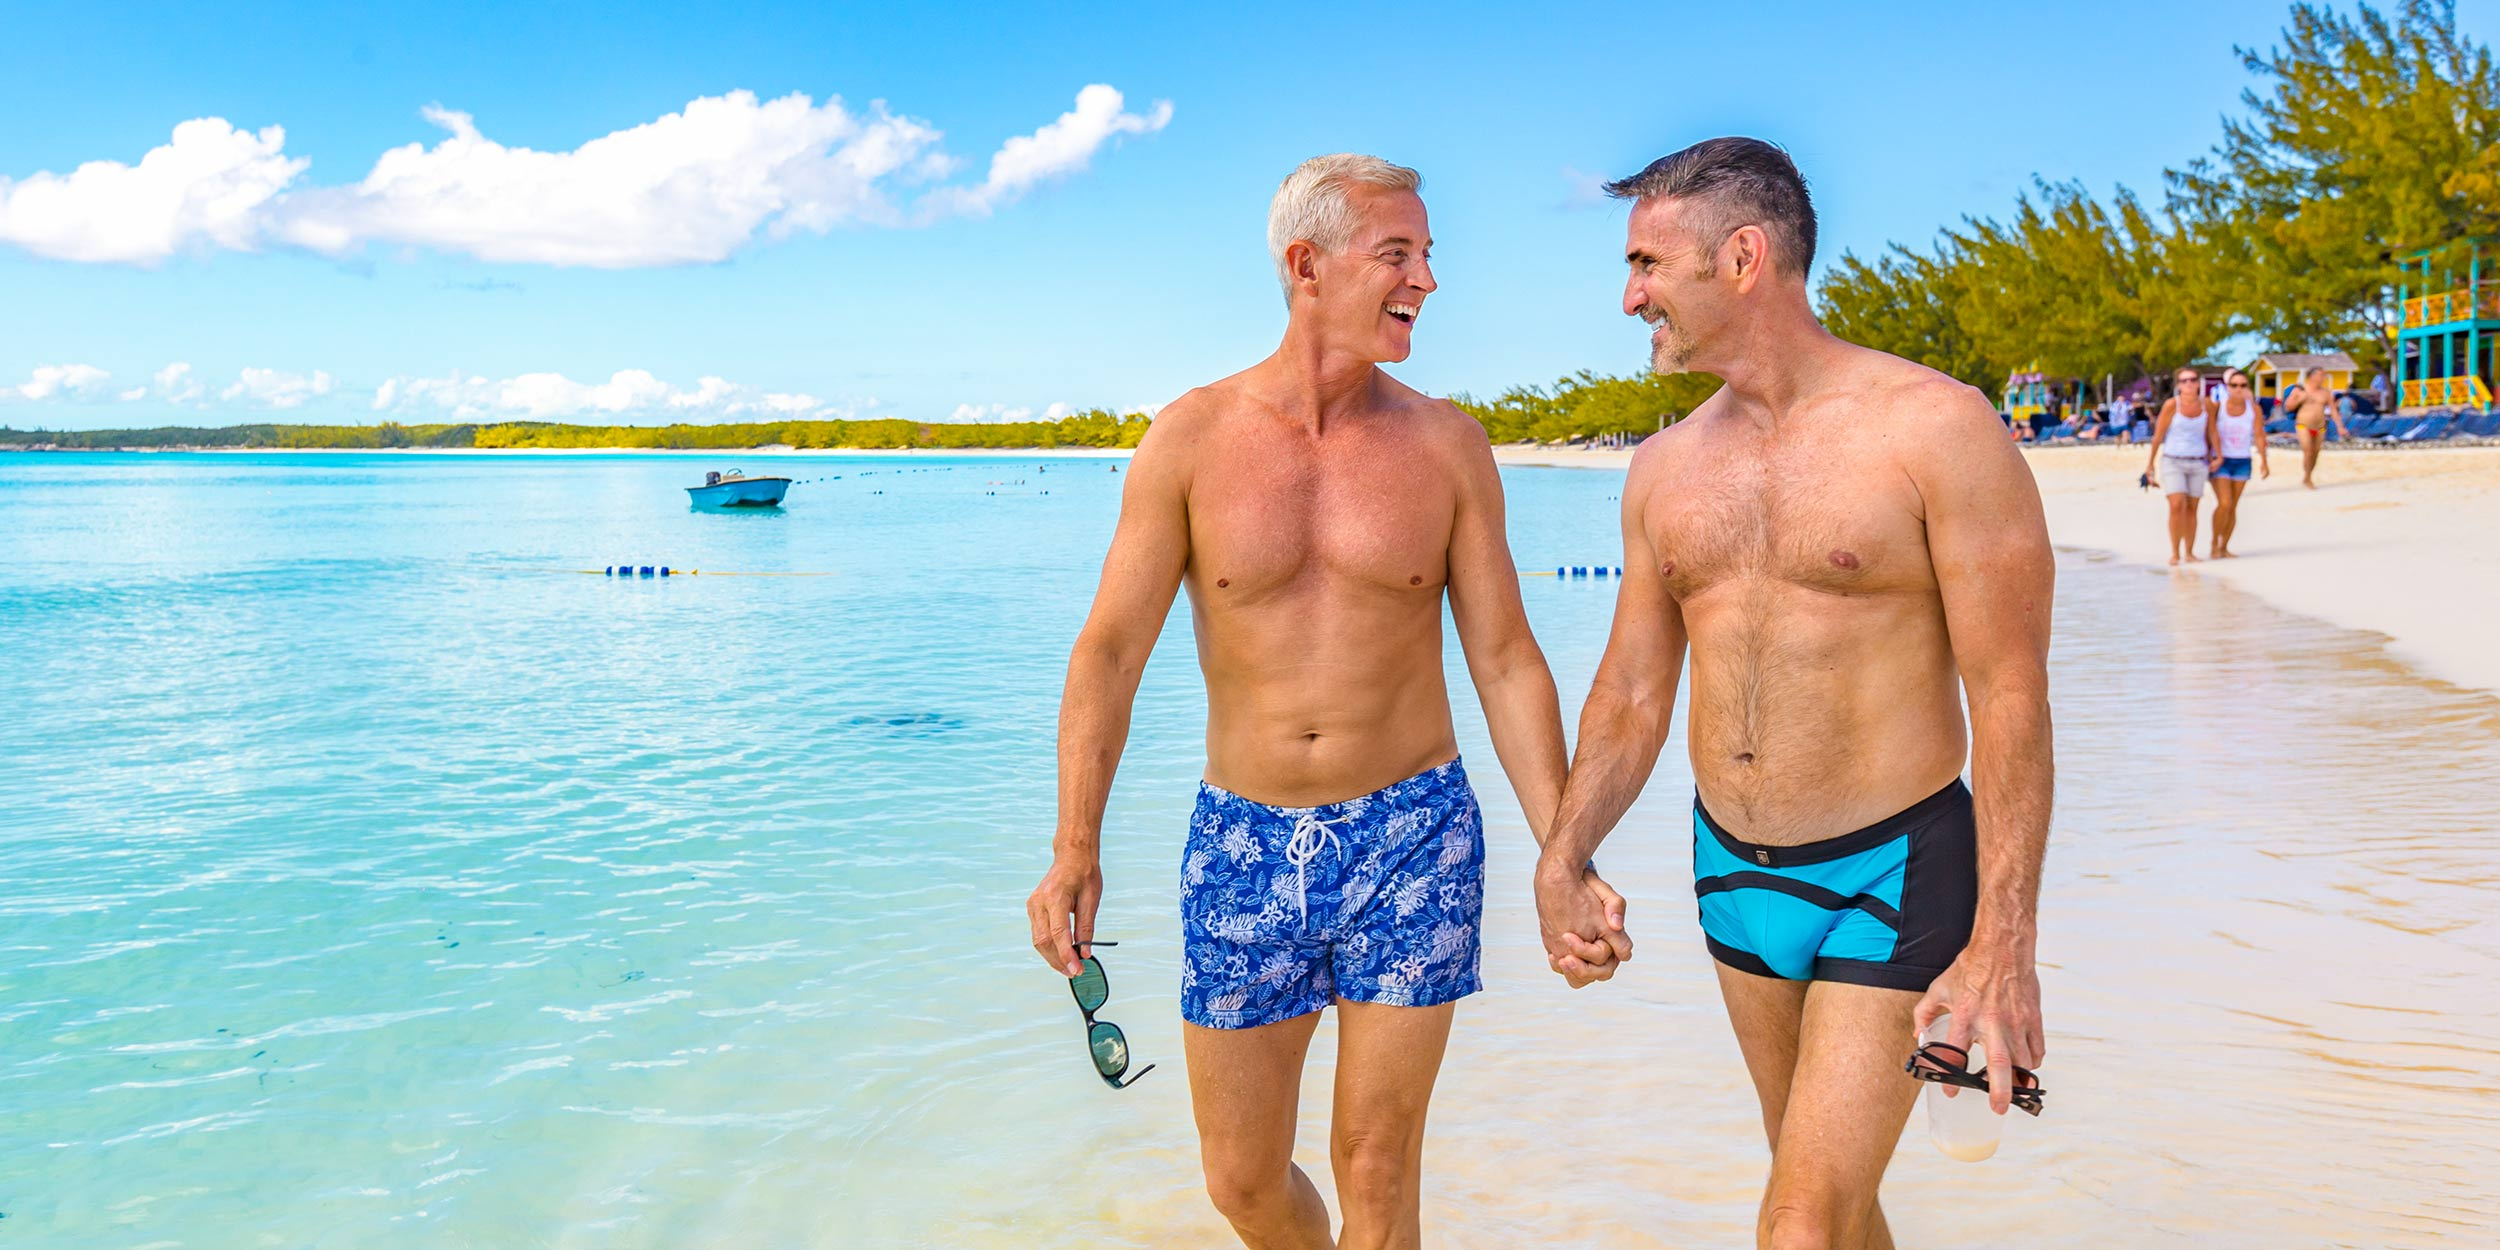 Two men holdings hands while looking at each other and smiling while walking down the beach